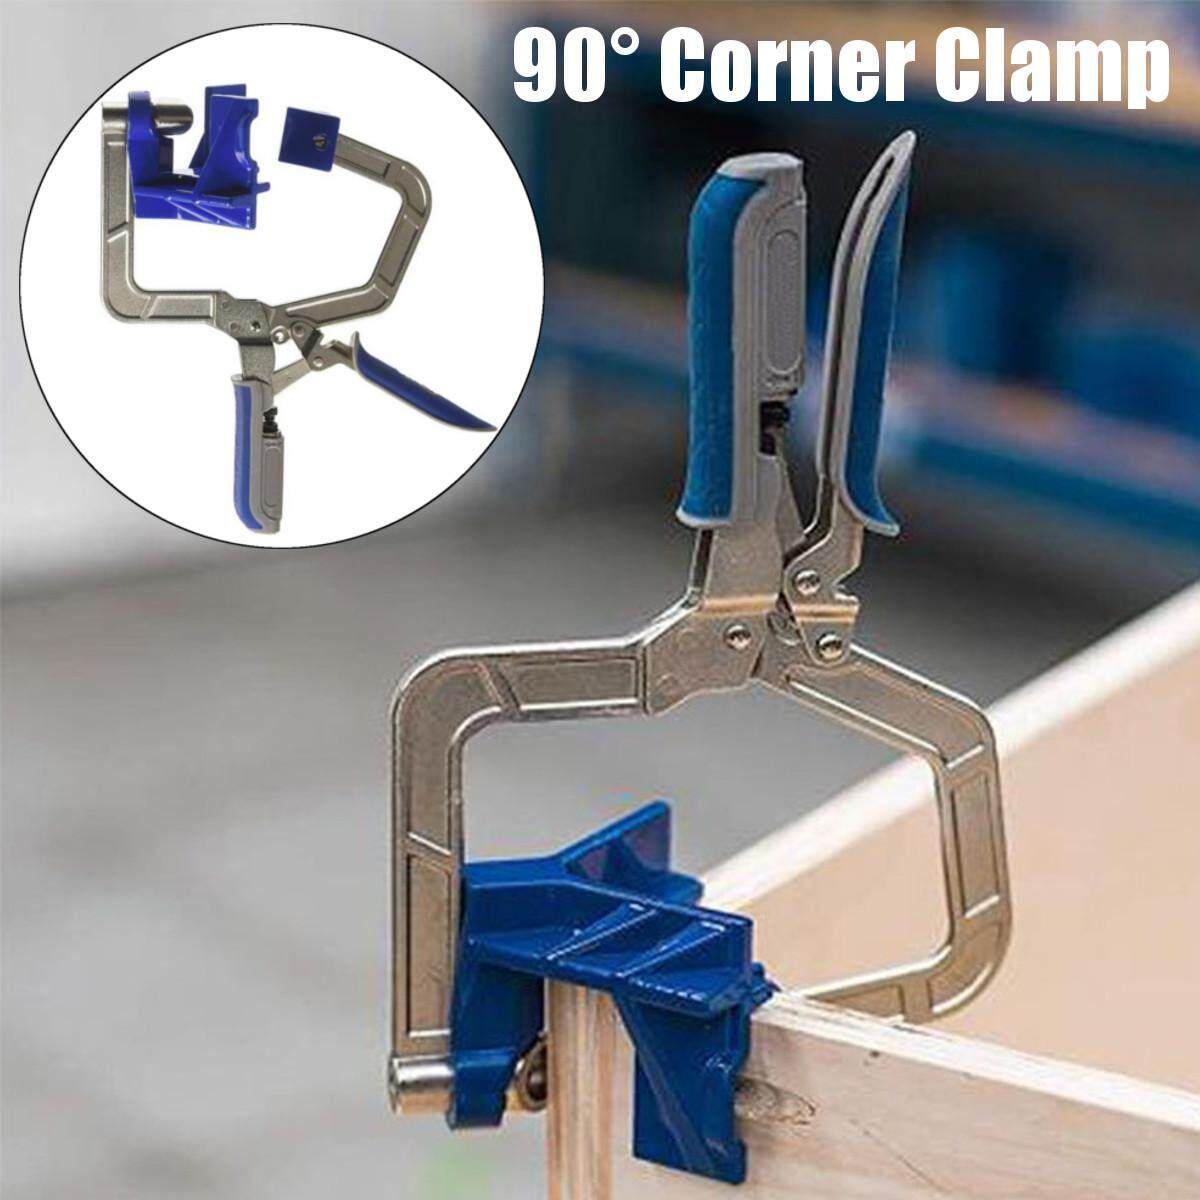 Pro Multifunctional Corner Clamp For Kreg  Jigs  90° Corner Joints and T Joints Tool